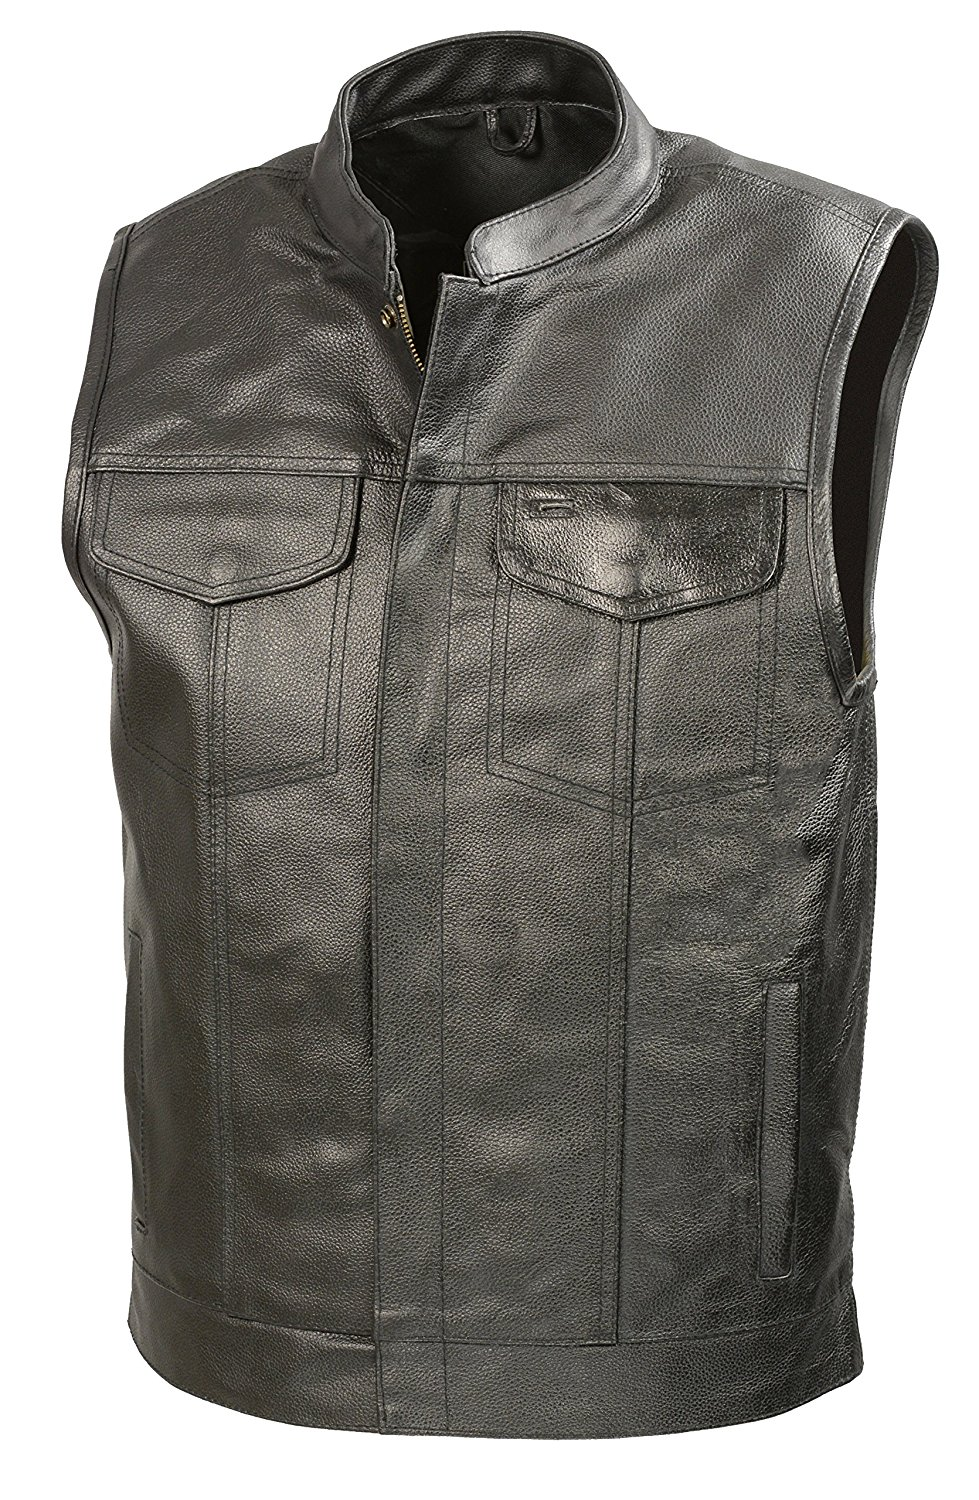 7. The Bikers Zone SOA Leather Vest